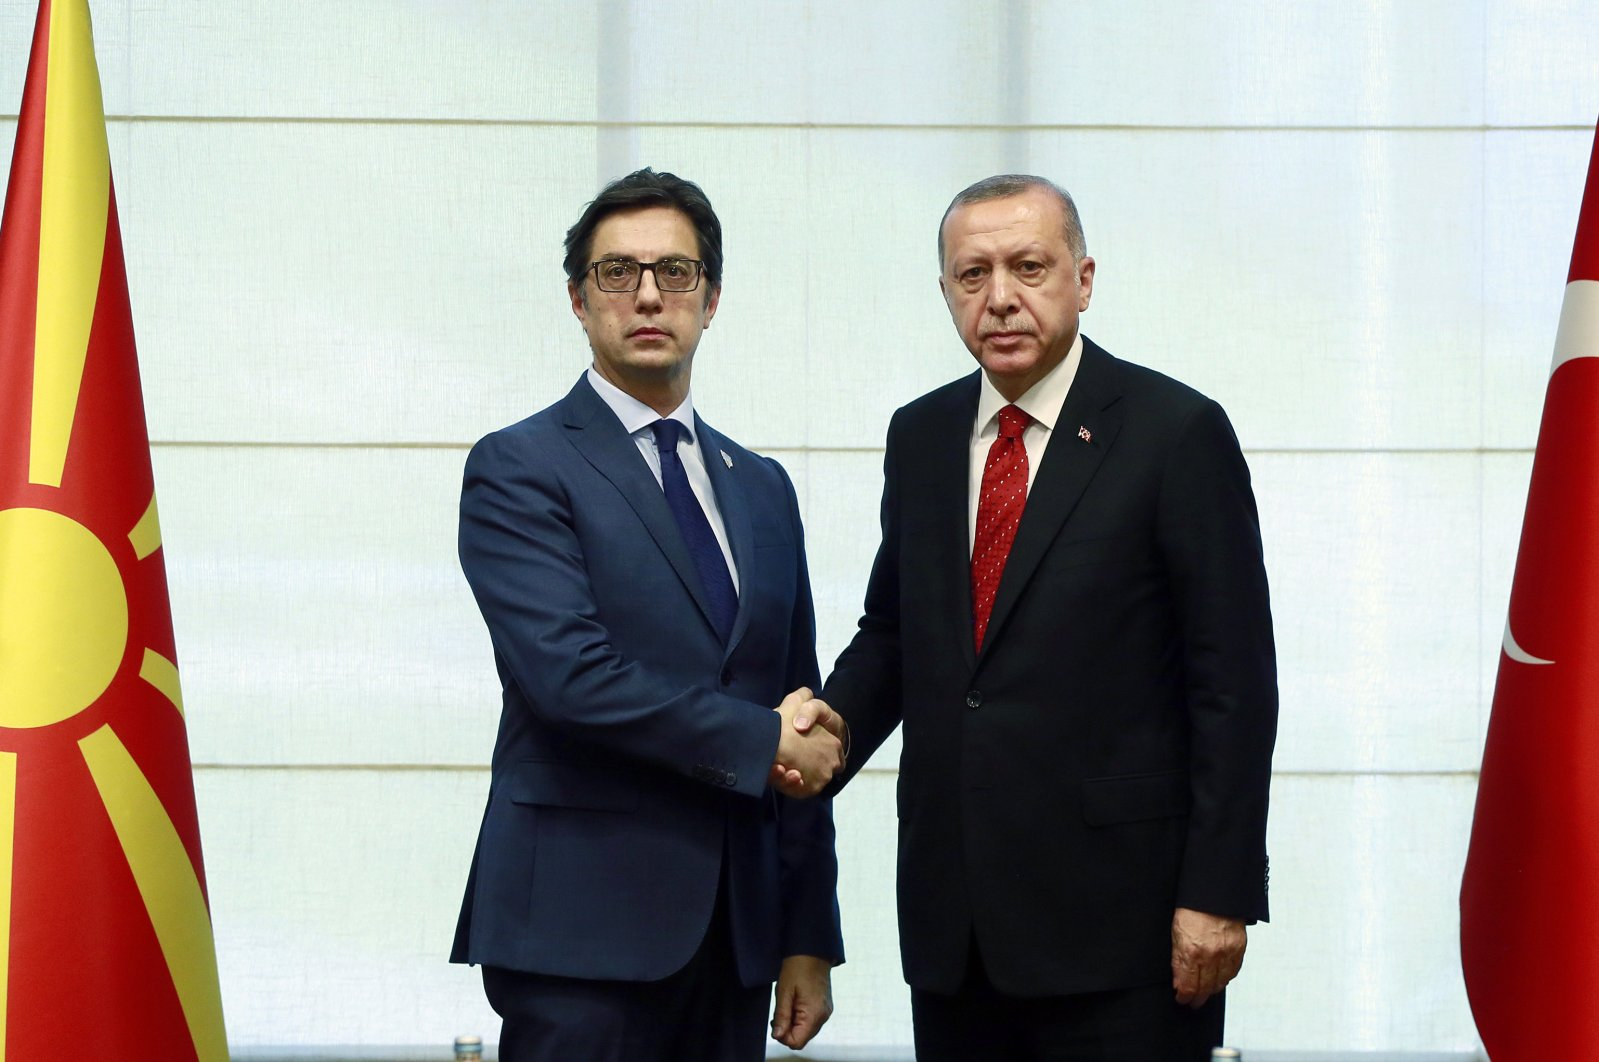 President Recep Tayyip Erdoğan, right, and President of North Macedonia Stevo Pandarovski shake hands during a meeting of the South-East European Cooperation Process at Mt. Jahorina, Bosnia, Tuesday, July 9, 2019. (AP Photo)